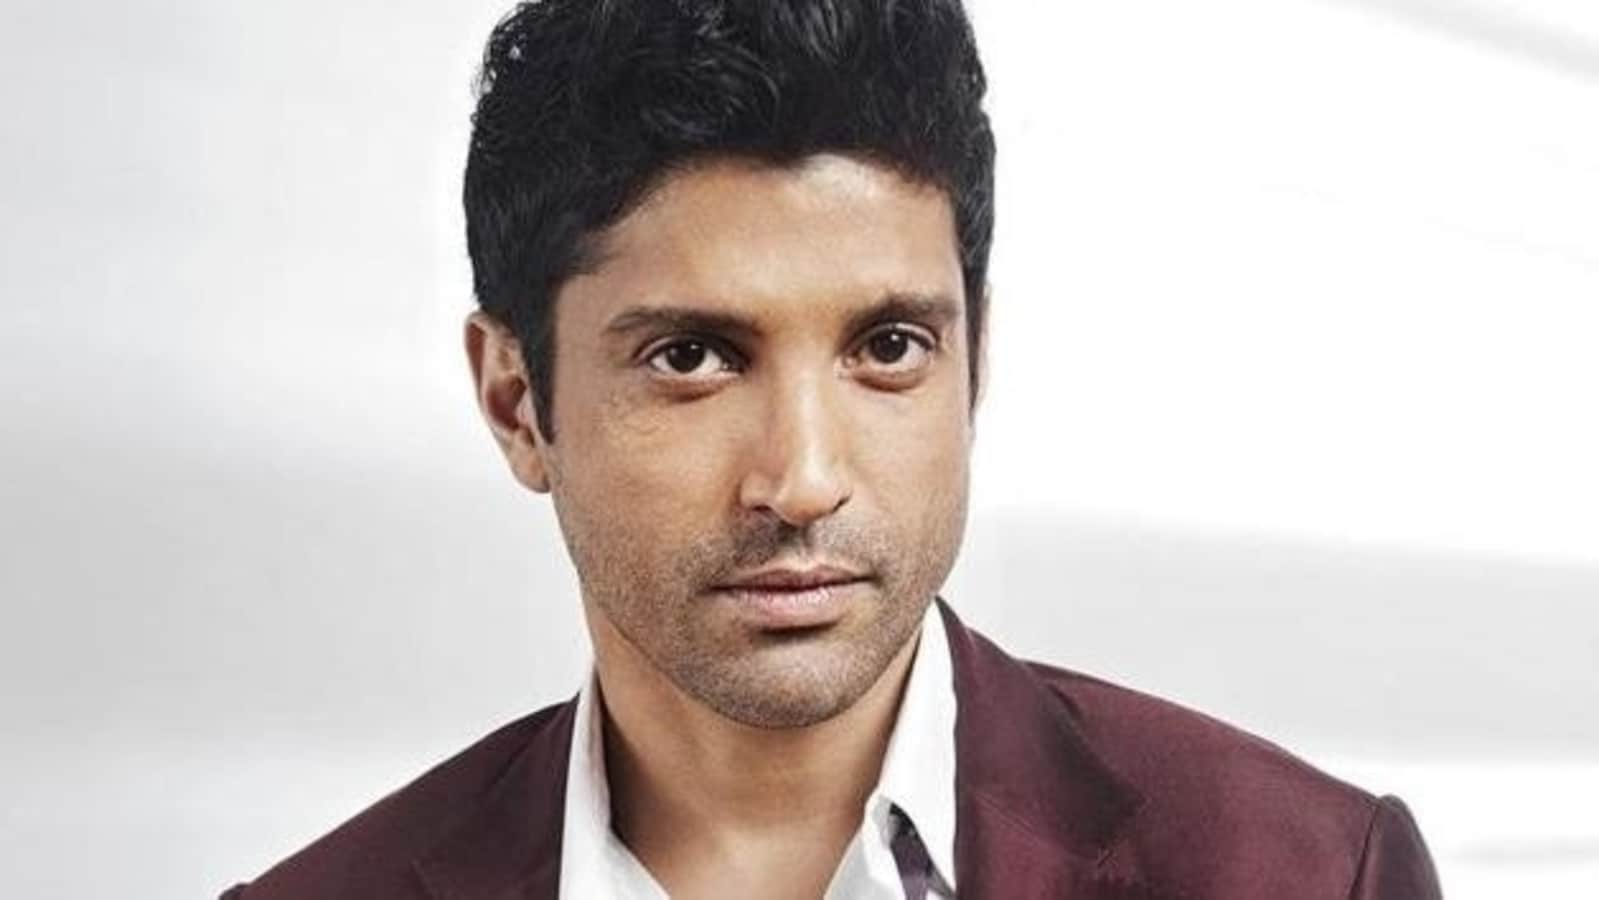 Farhan Akhtar shuts down Twitter user calling him 'VIP brat' for using drive-in vaccination facility - Hindustan Times